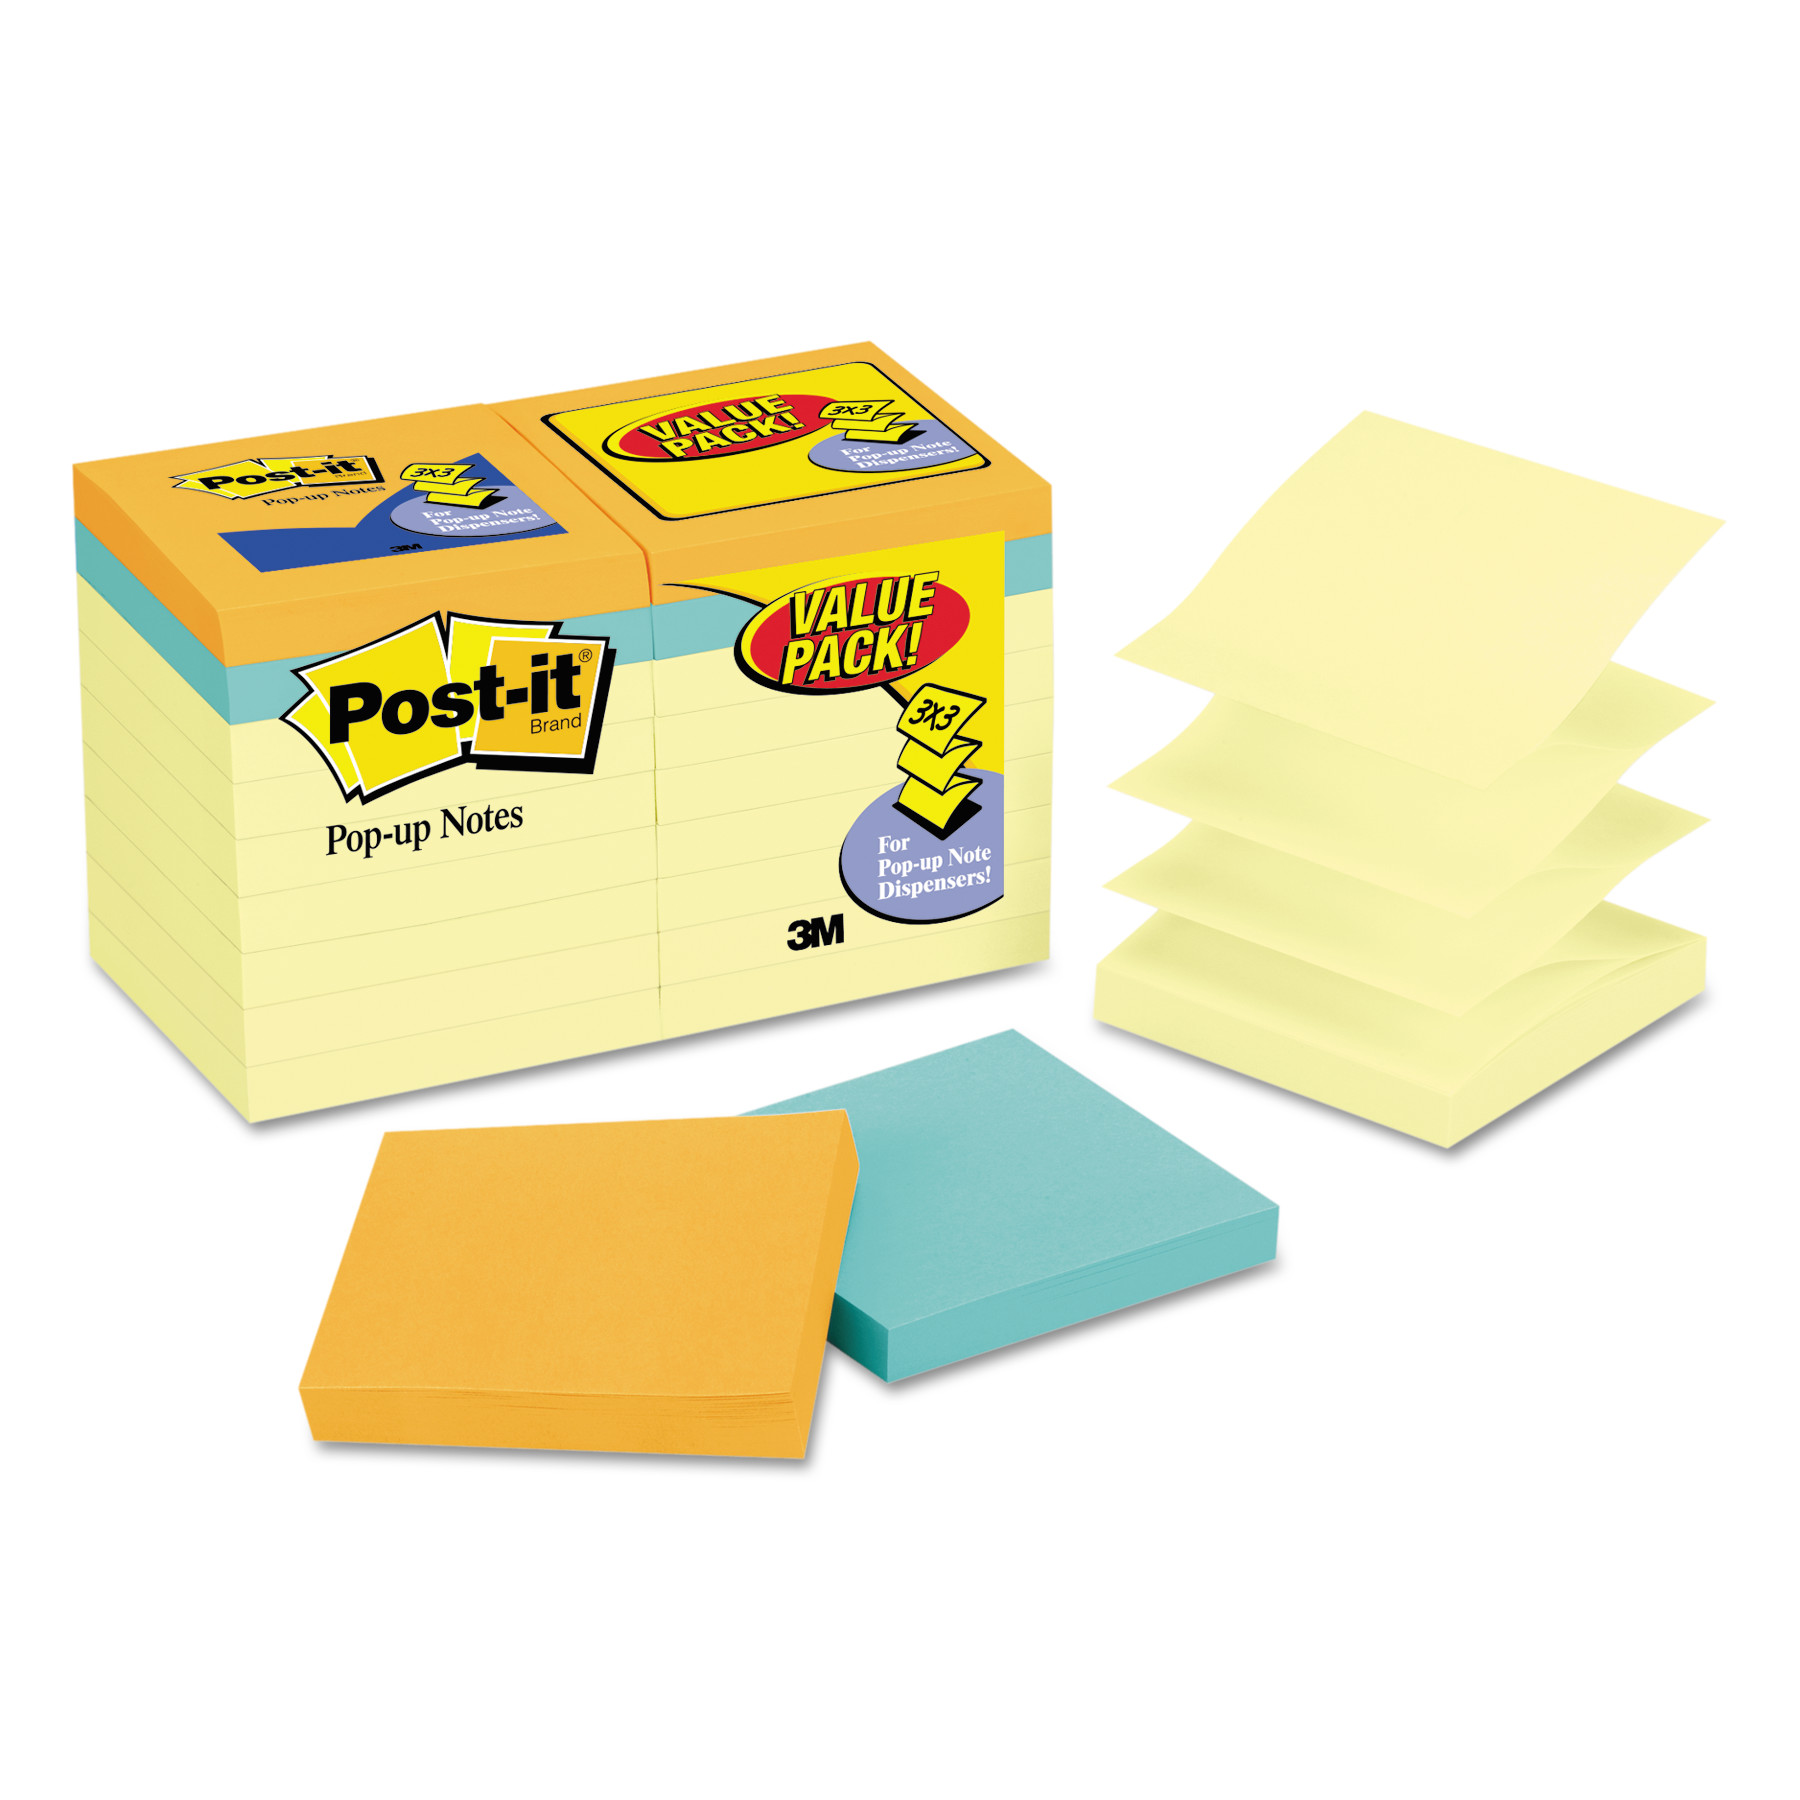 Post-it Original Pop-up Notes 18 Pack, 3in. x 3in., Canary and Cape Town Collection, 18 Pads per pack, 100 Sheets per Pad, 1800 Sheets Total